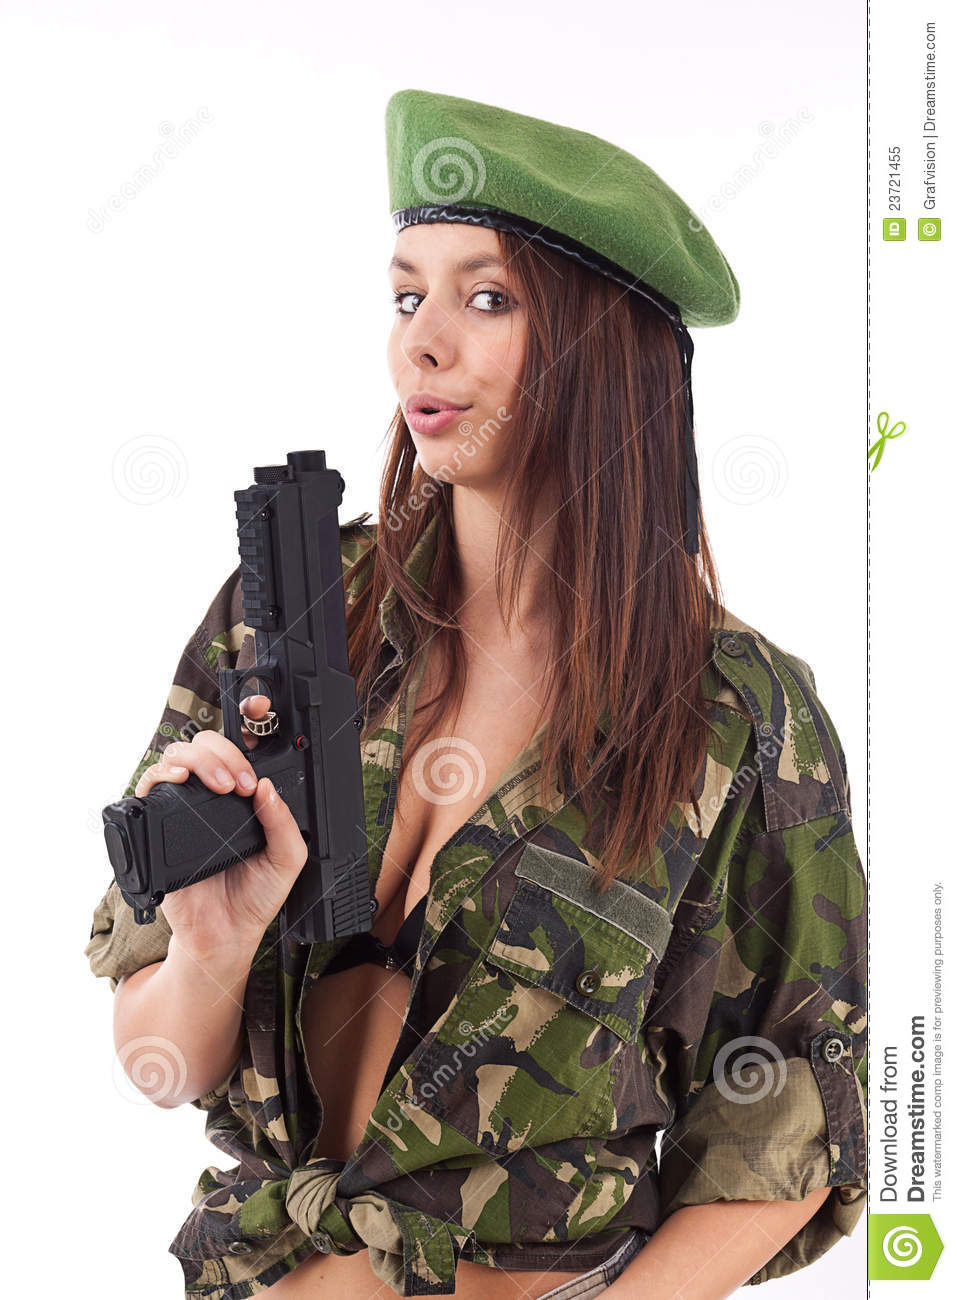 Military naked army girl holding a gun sorry